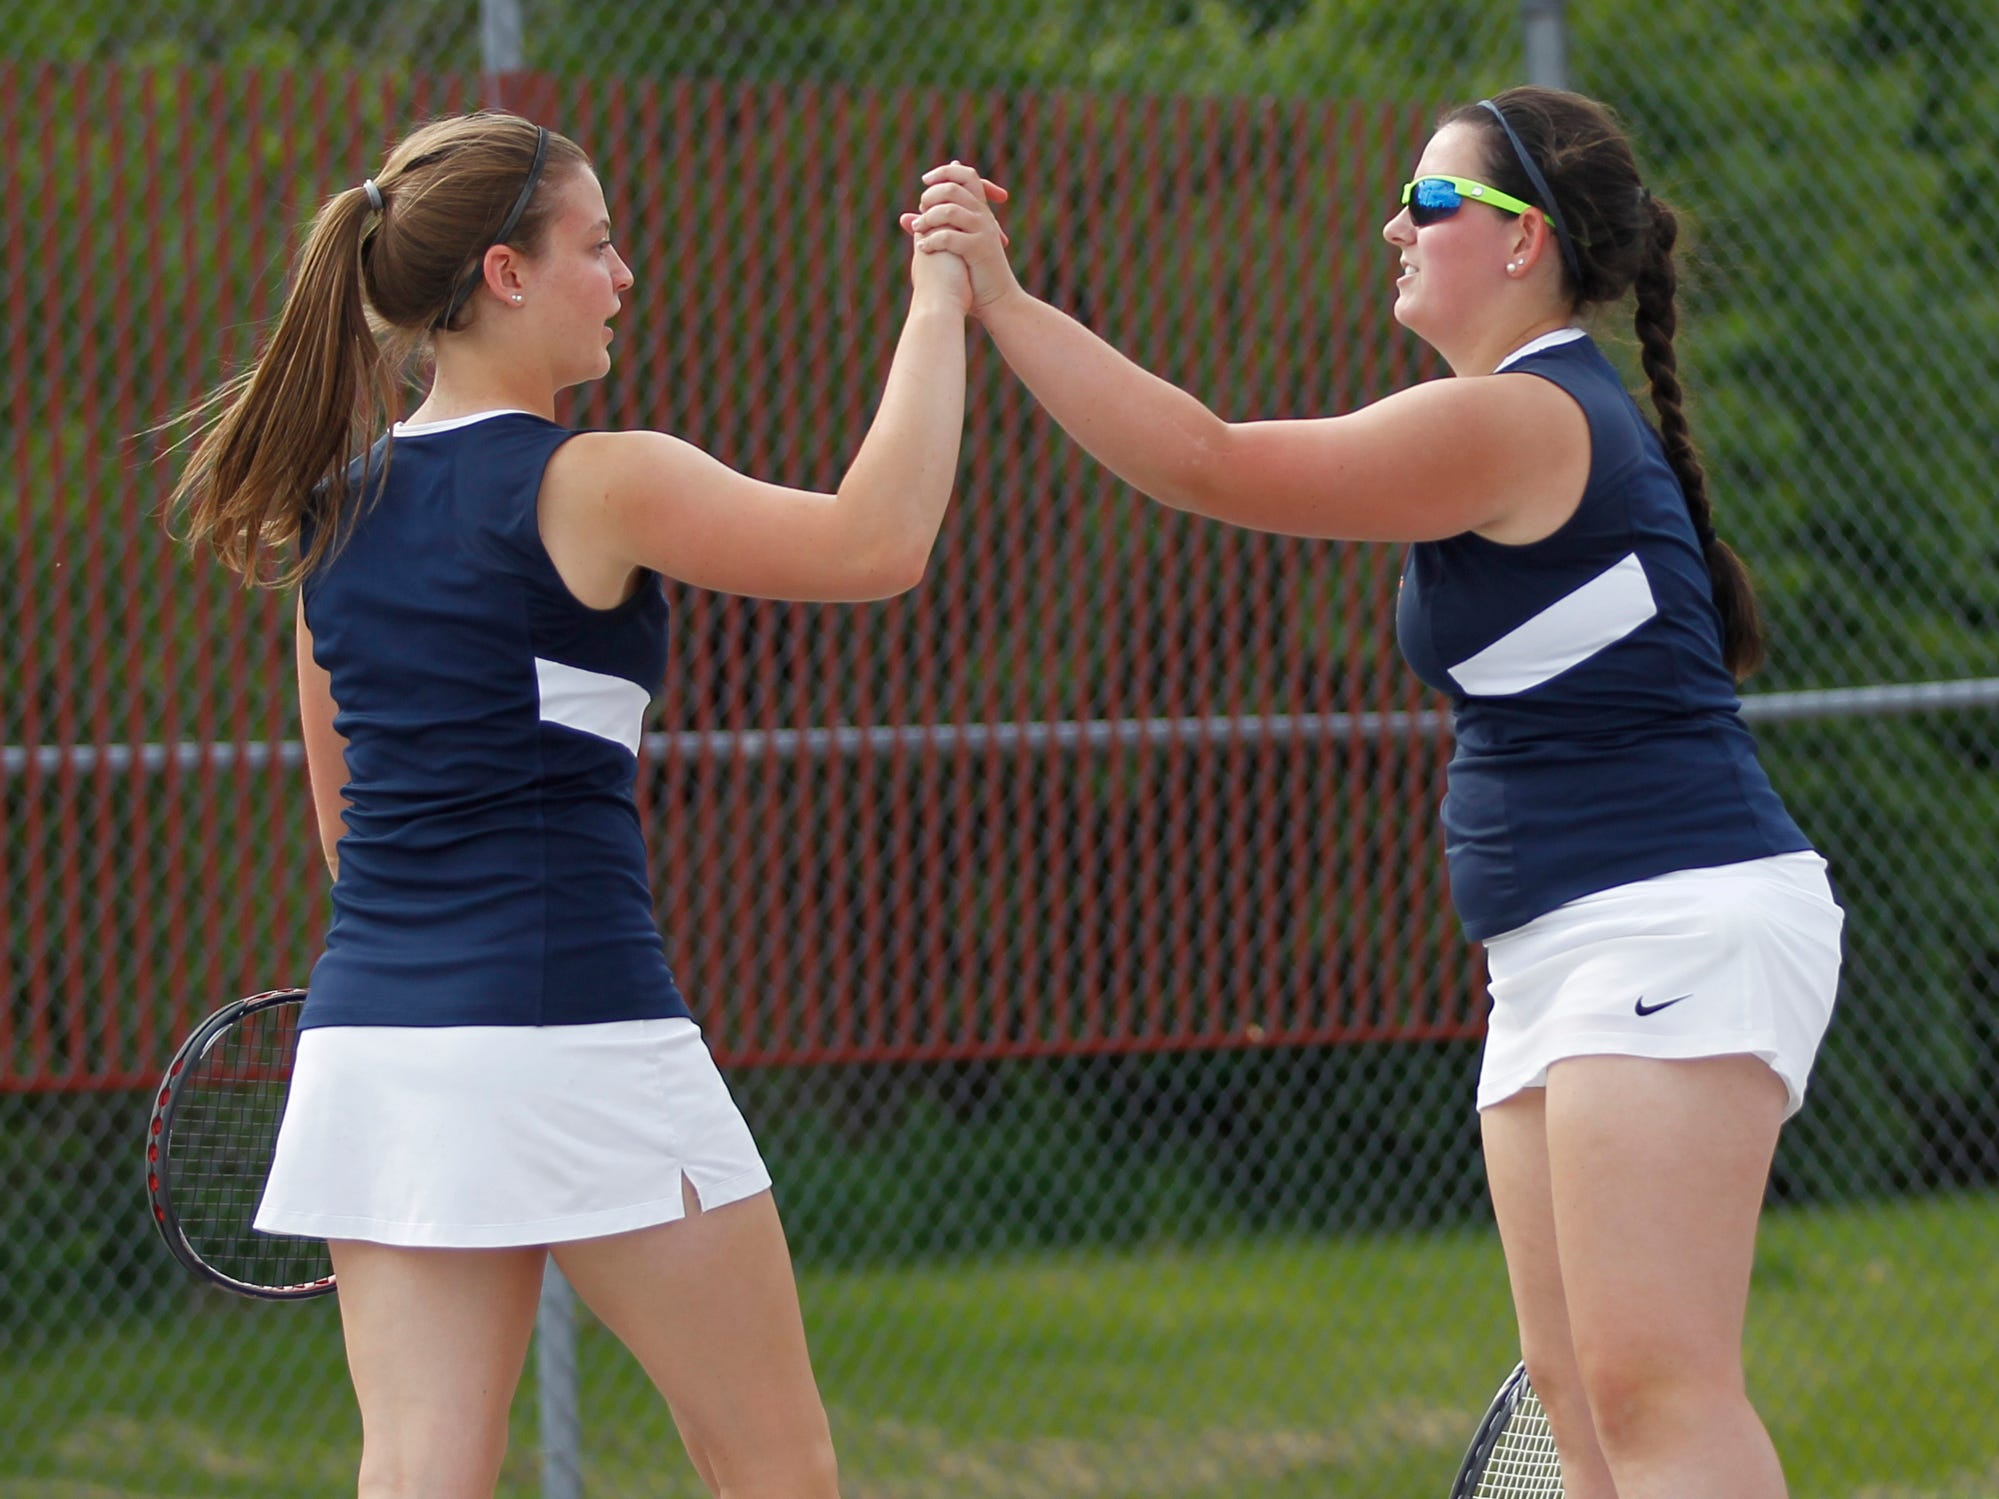 Harrison's Janie Zeh, left, and Hannah Eastman celebrate a point in their match at No. 2 doubles against Alyssa Tharp and Lizzi Cramer of Central Catholic during the West Lafayette girls tennis sectional Friday at Cumberland Elementary School. Eastman and Zeh won 6-0, 6-3.